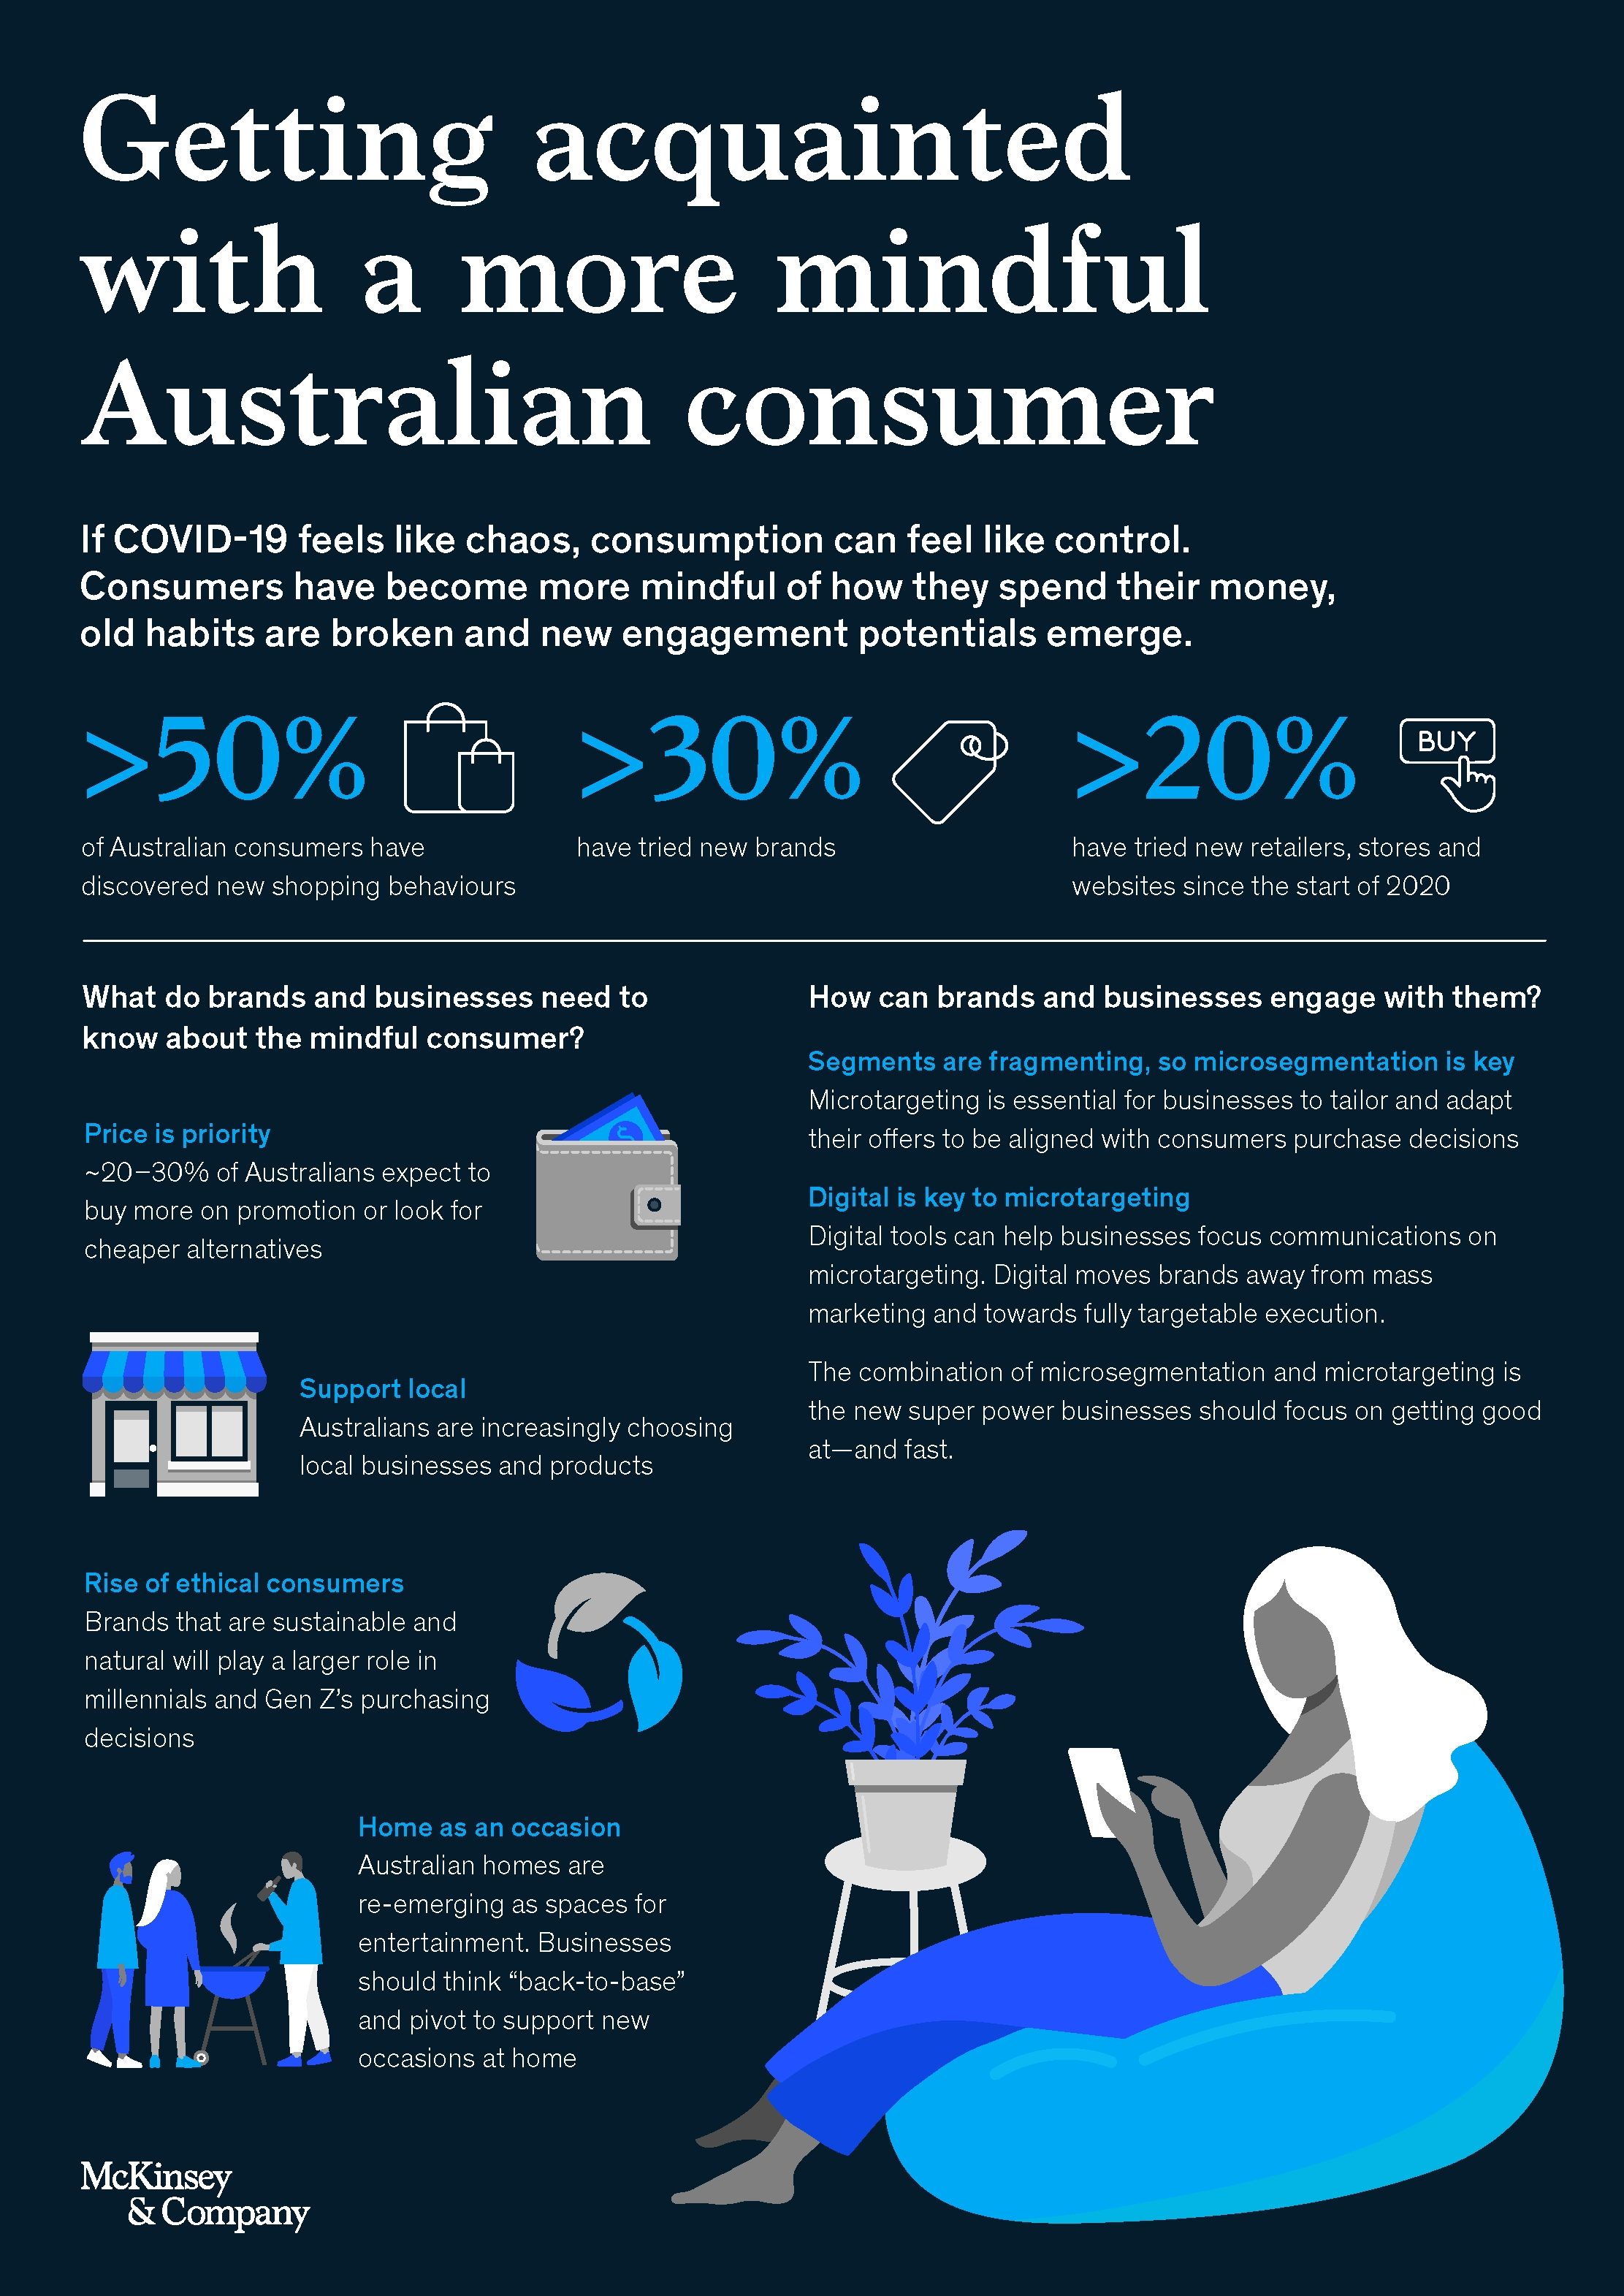 Getting acquainted with a more mindful Australian consumer